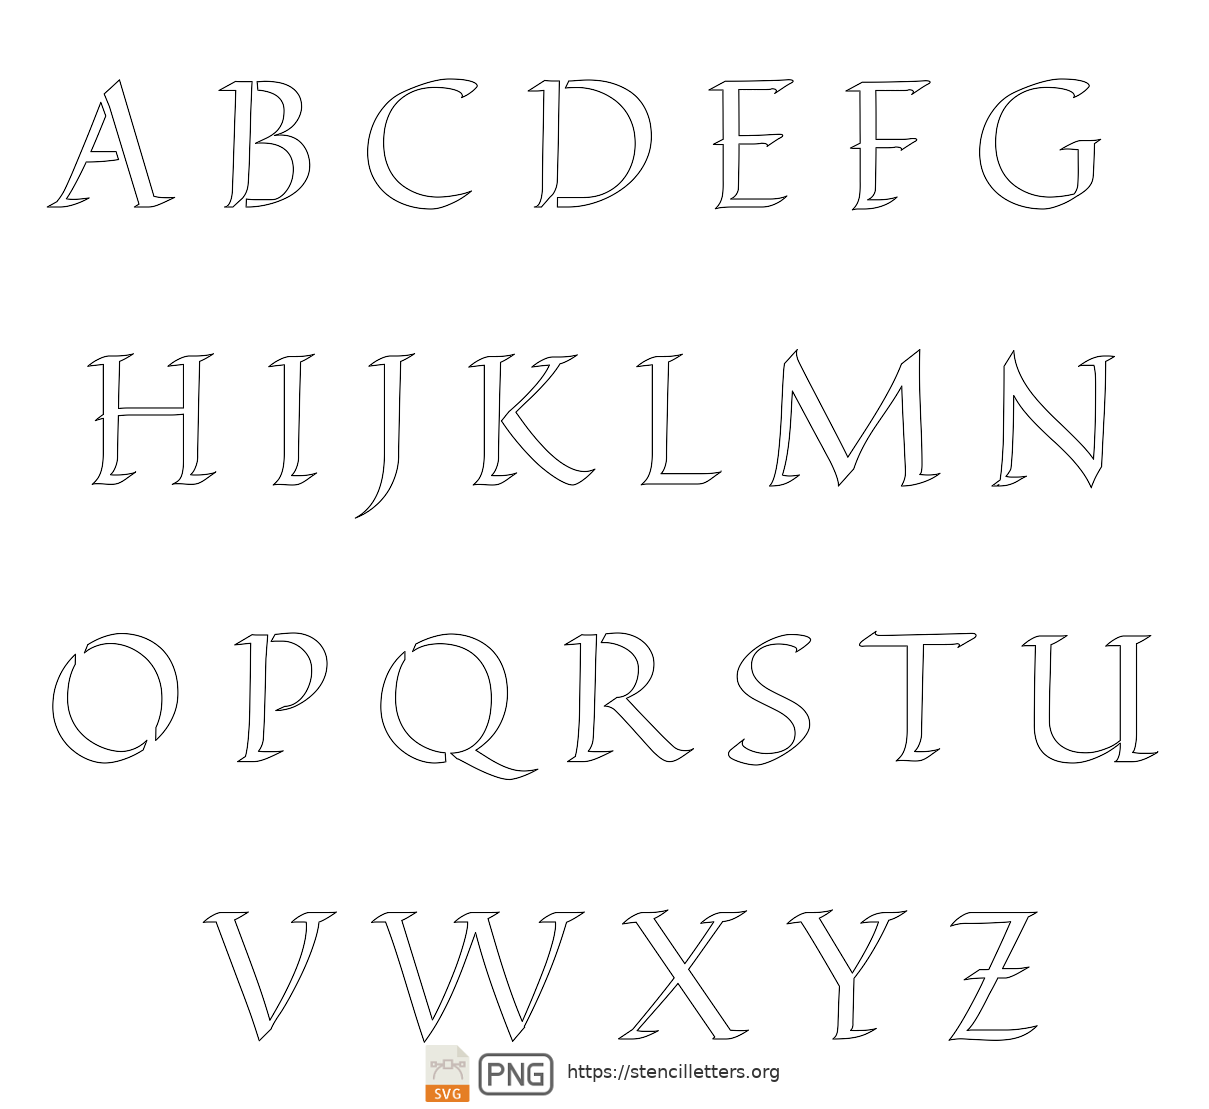 Longhand Calligraphy uppercase letter stencils